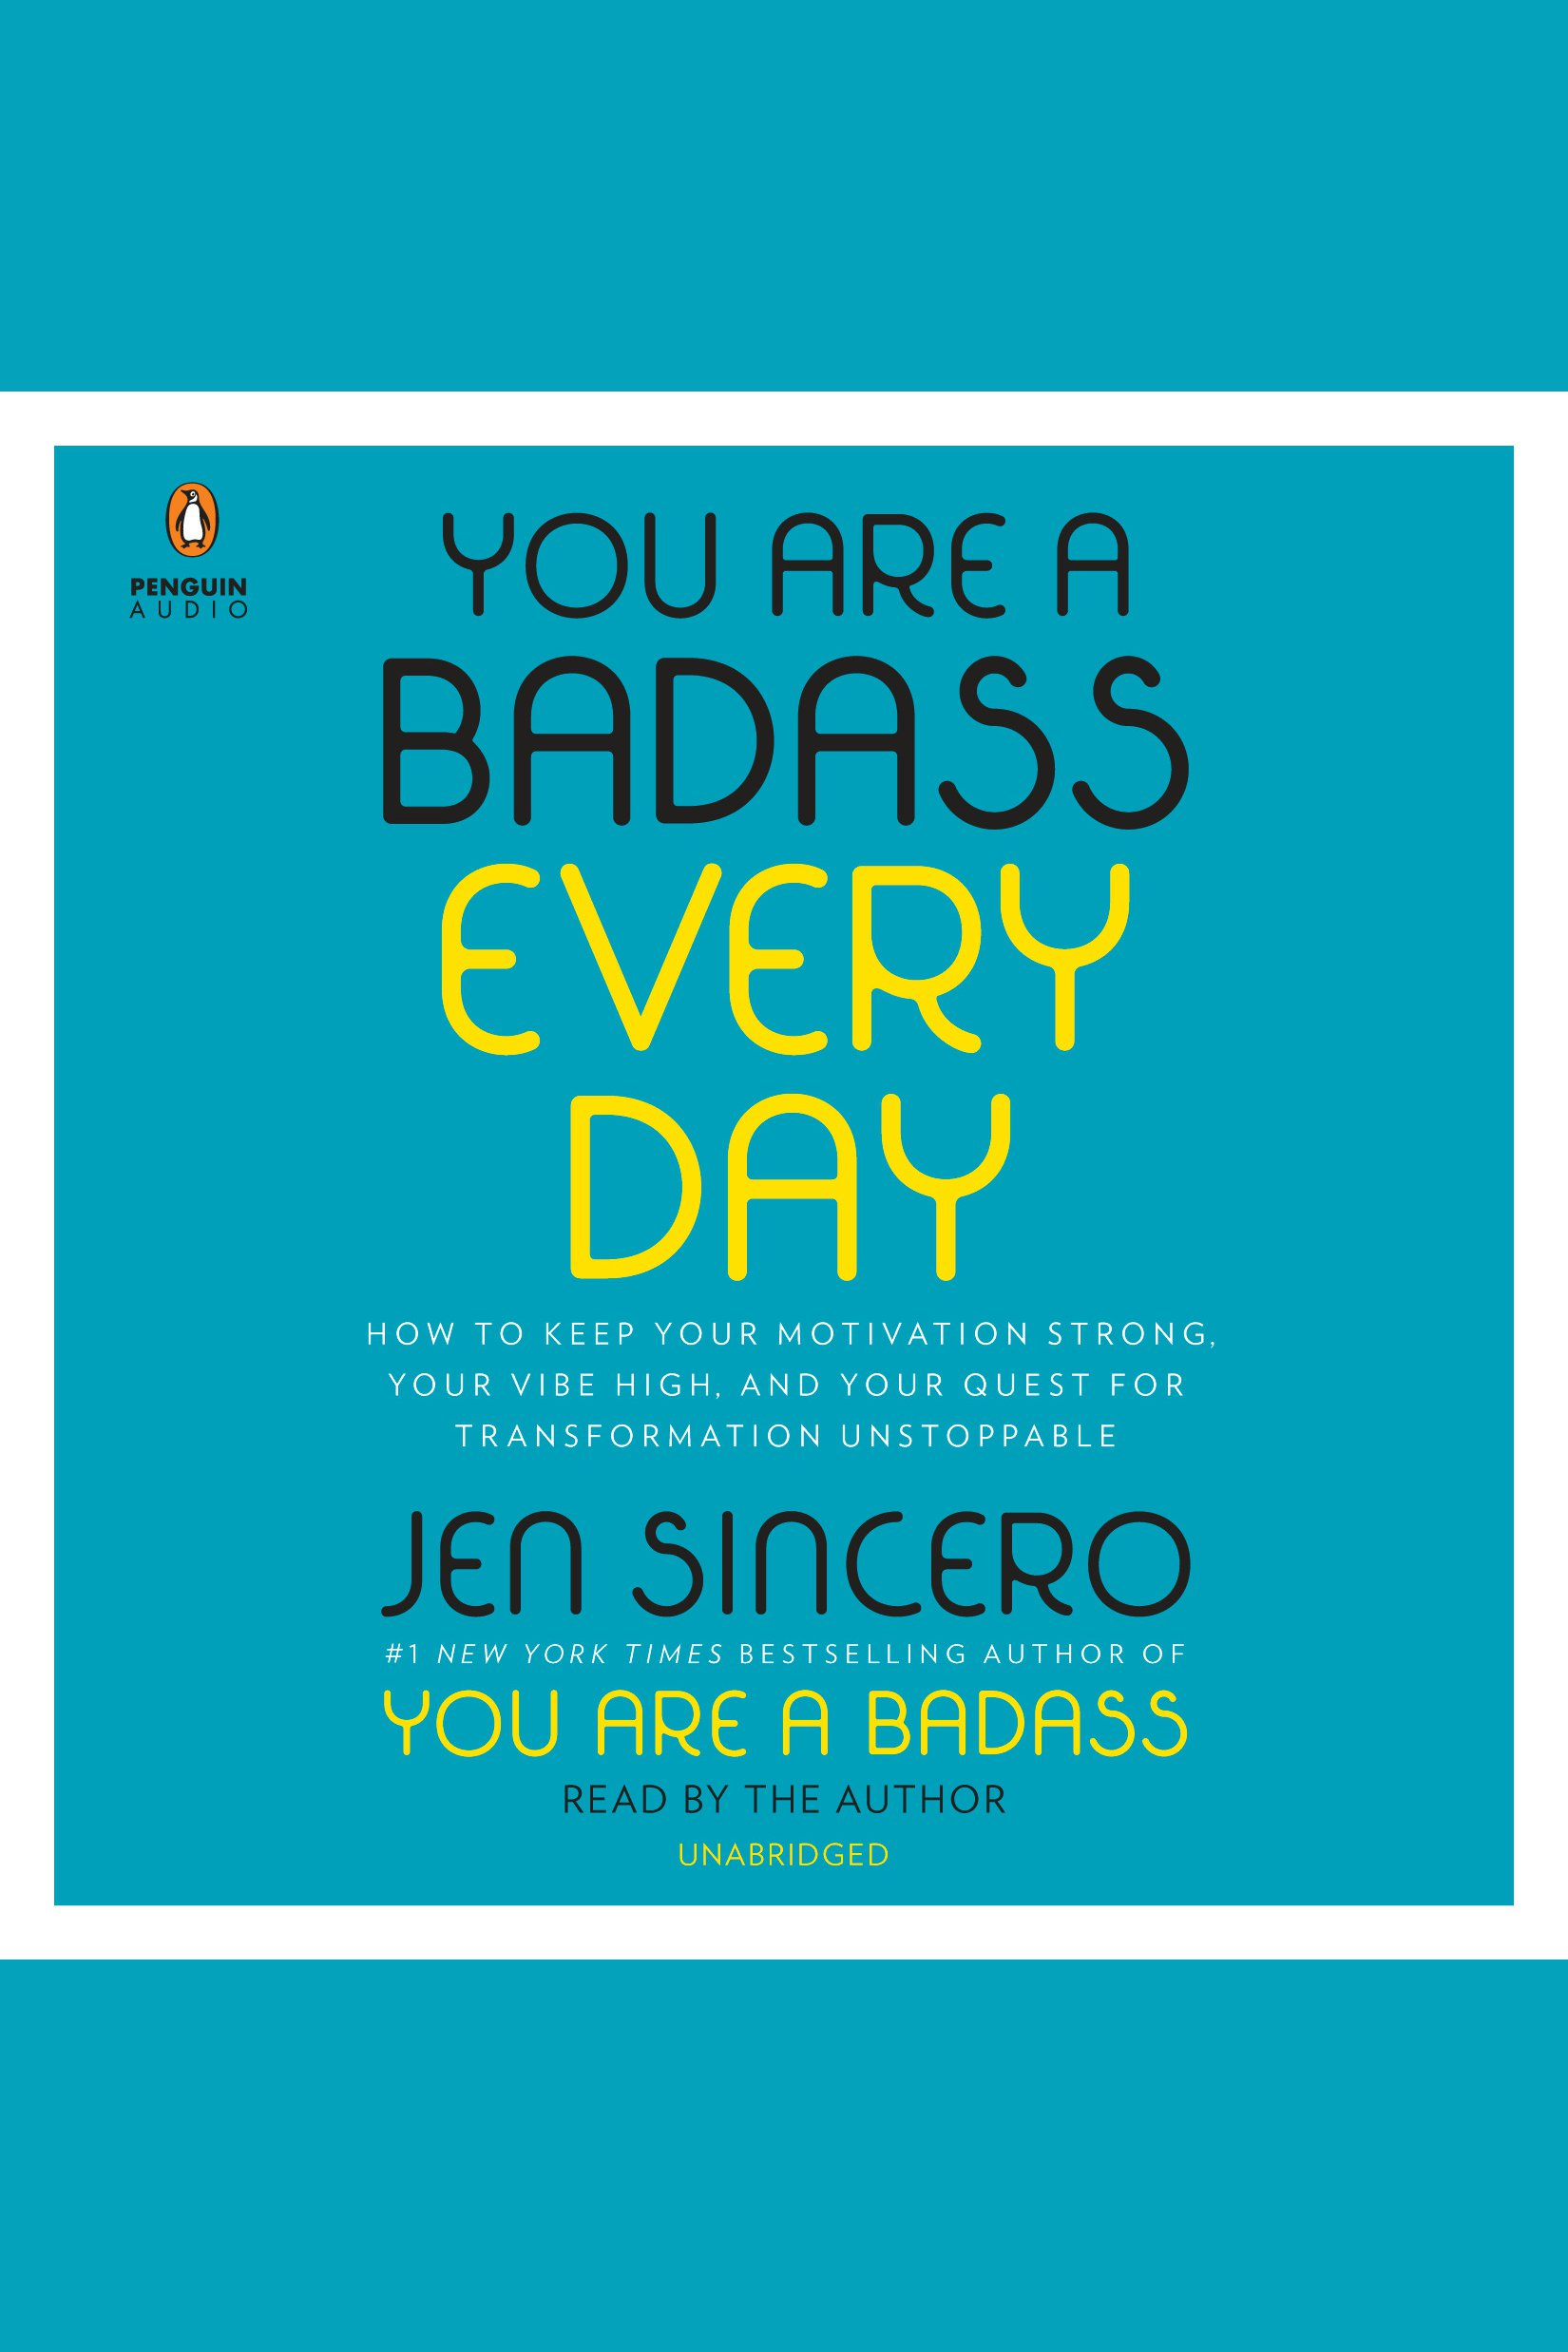 You Are a Badass Every Day:How to Keep Your Motivation Strong, Your Vibe High, and Your Quest for Transformation Unstoppable